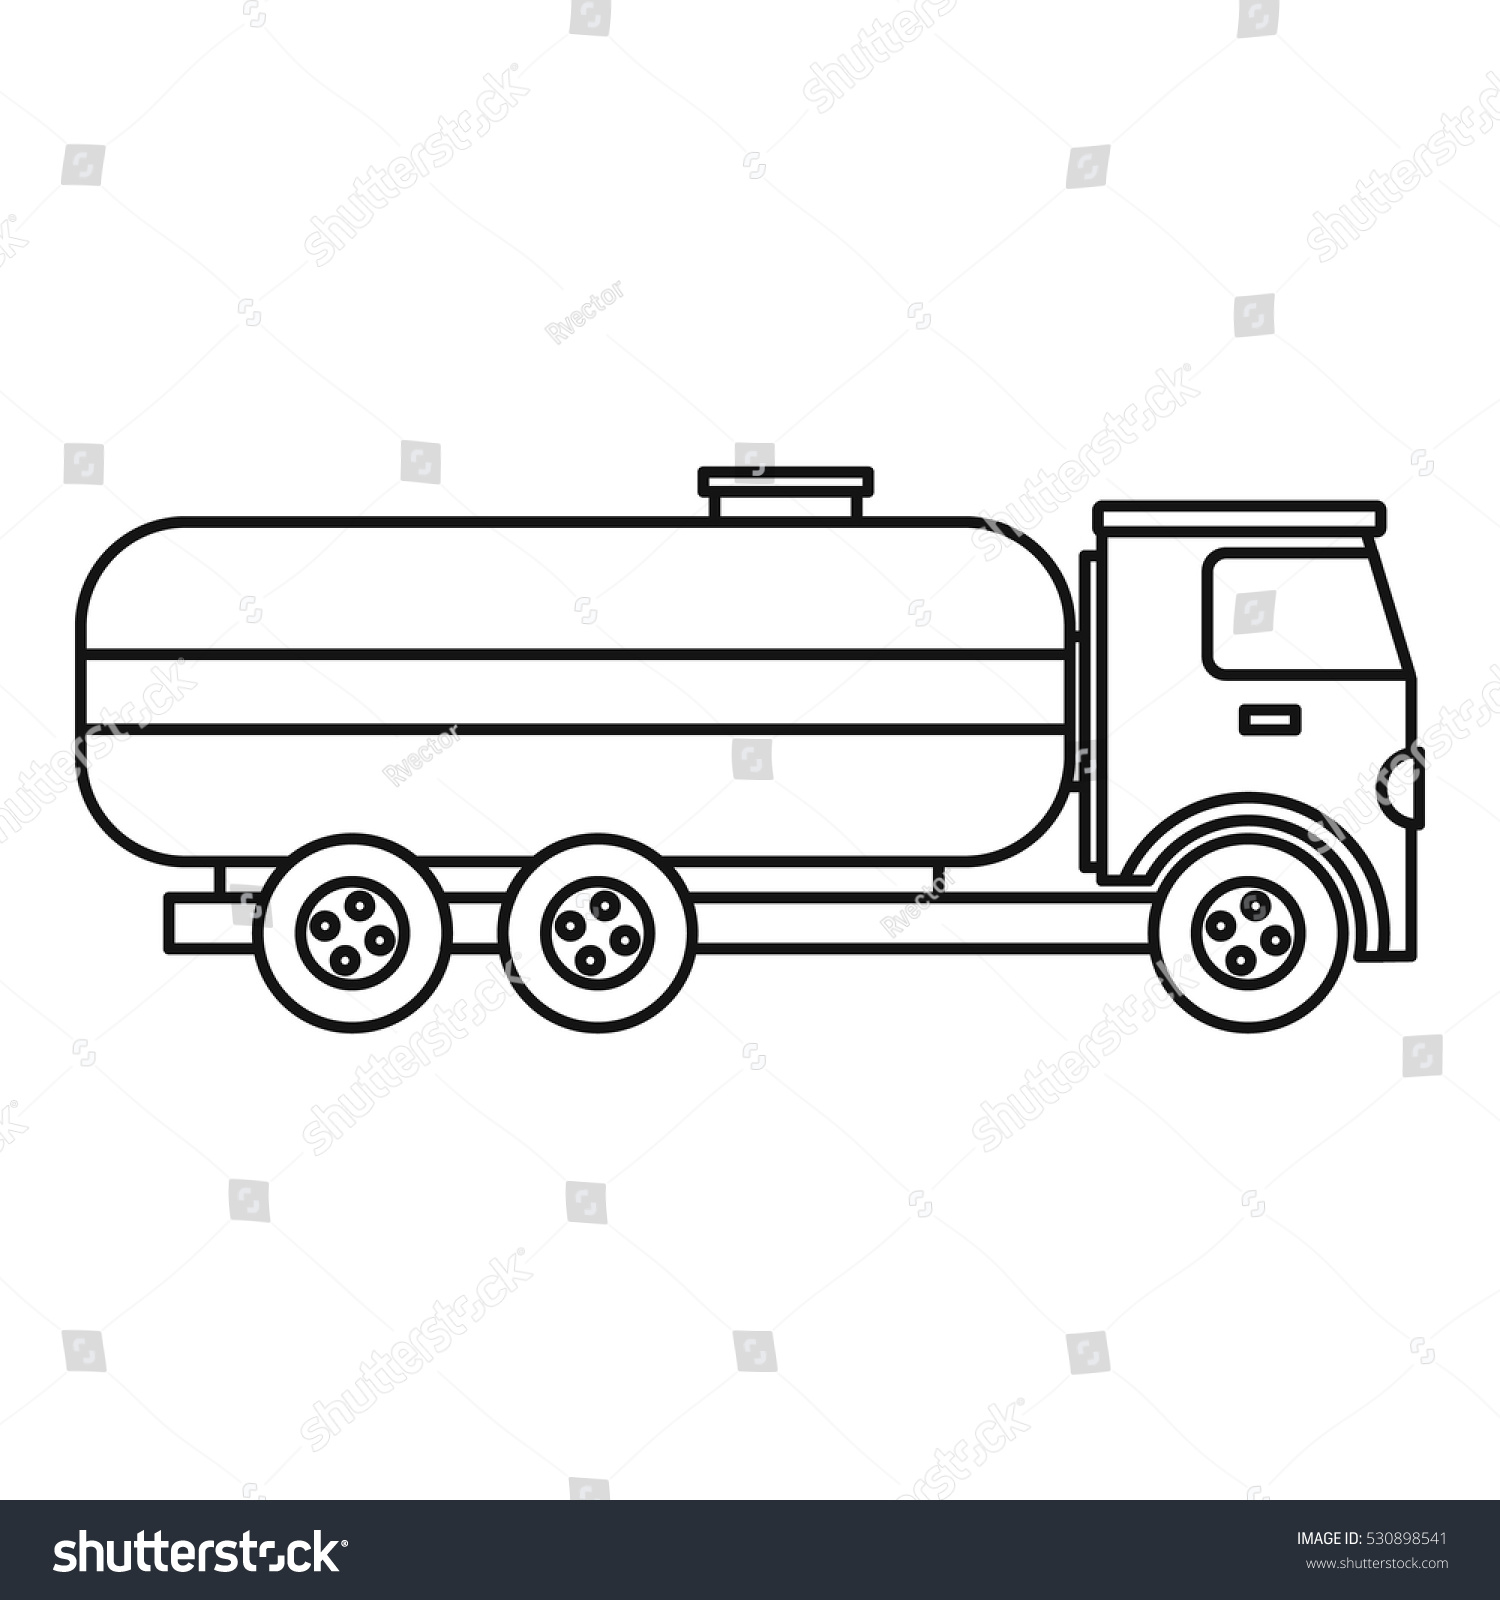 fuel tanker truck icon outline illustration stock vector 530898541